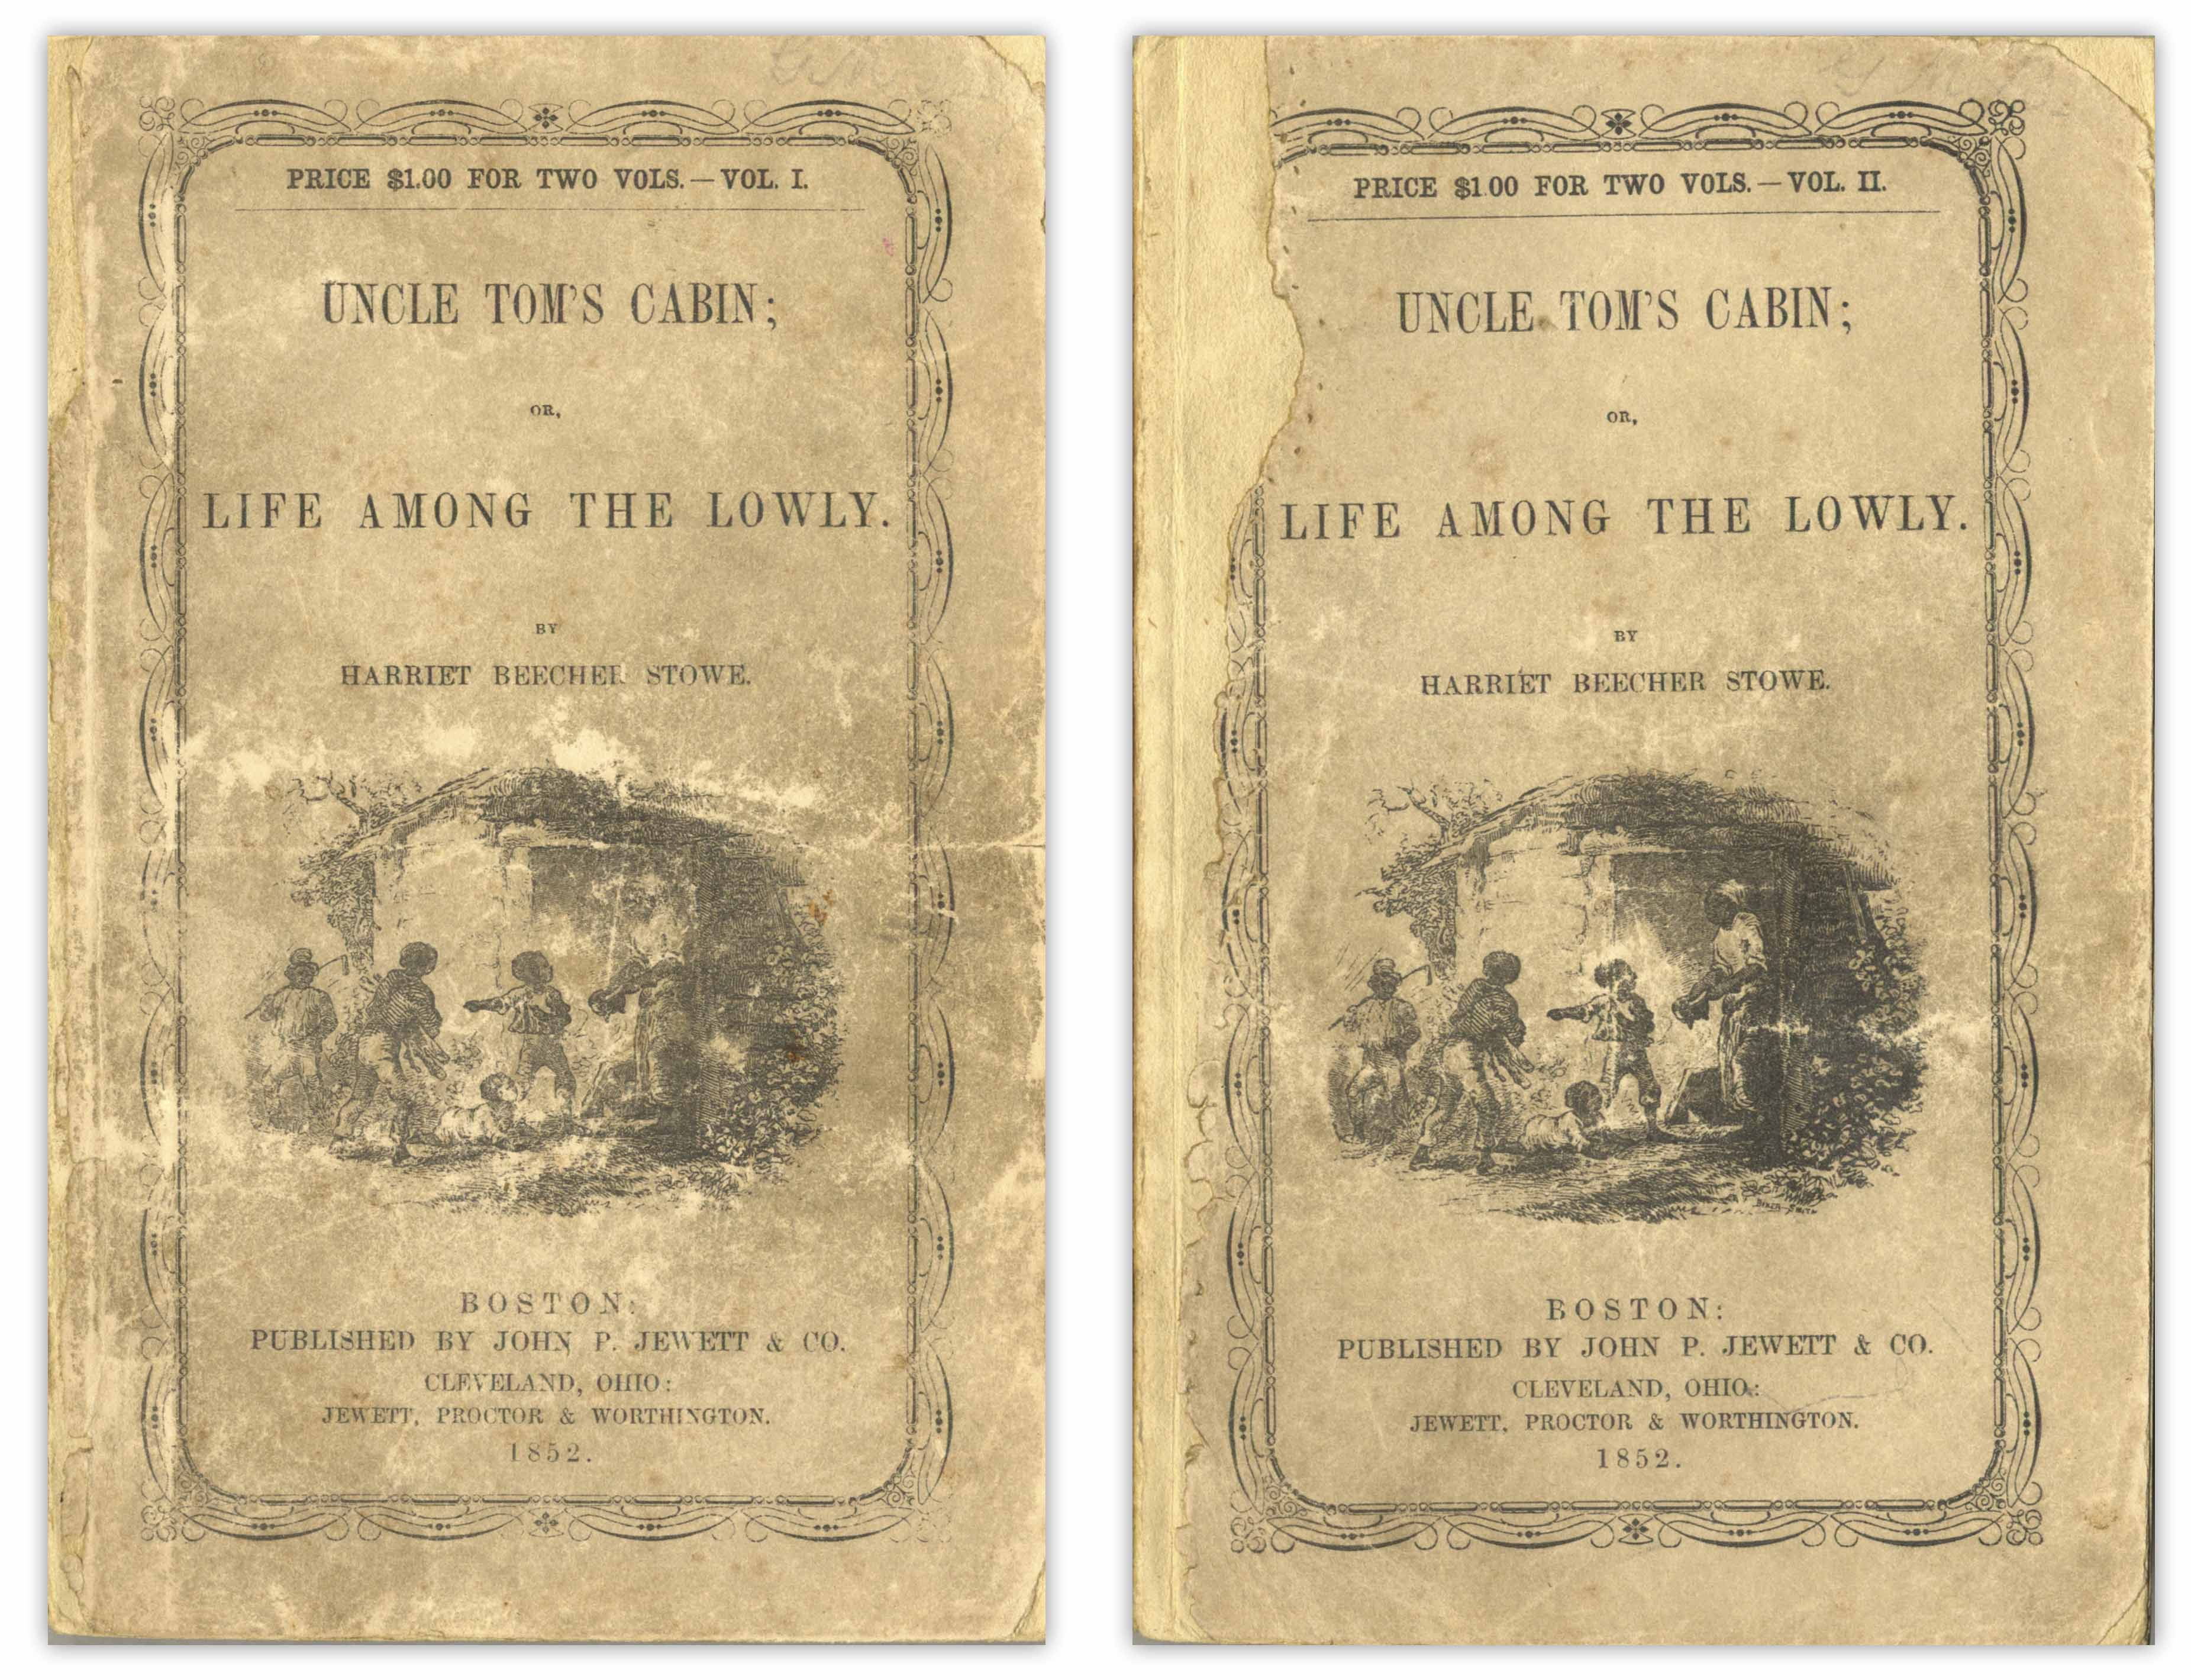 Sell Your Uncle Tom S Cabin First Edition At Nate D